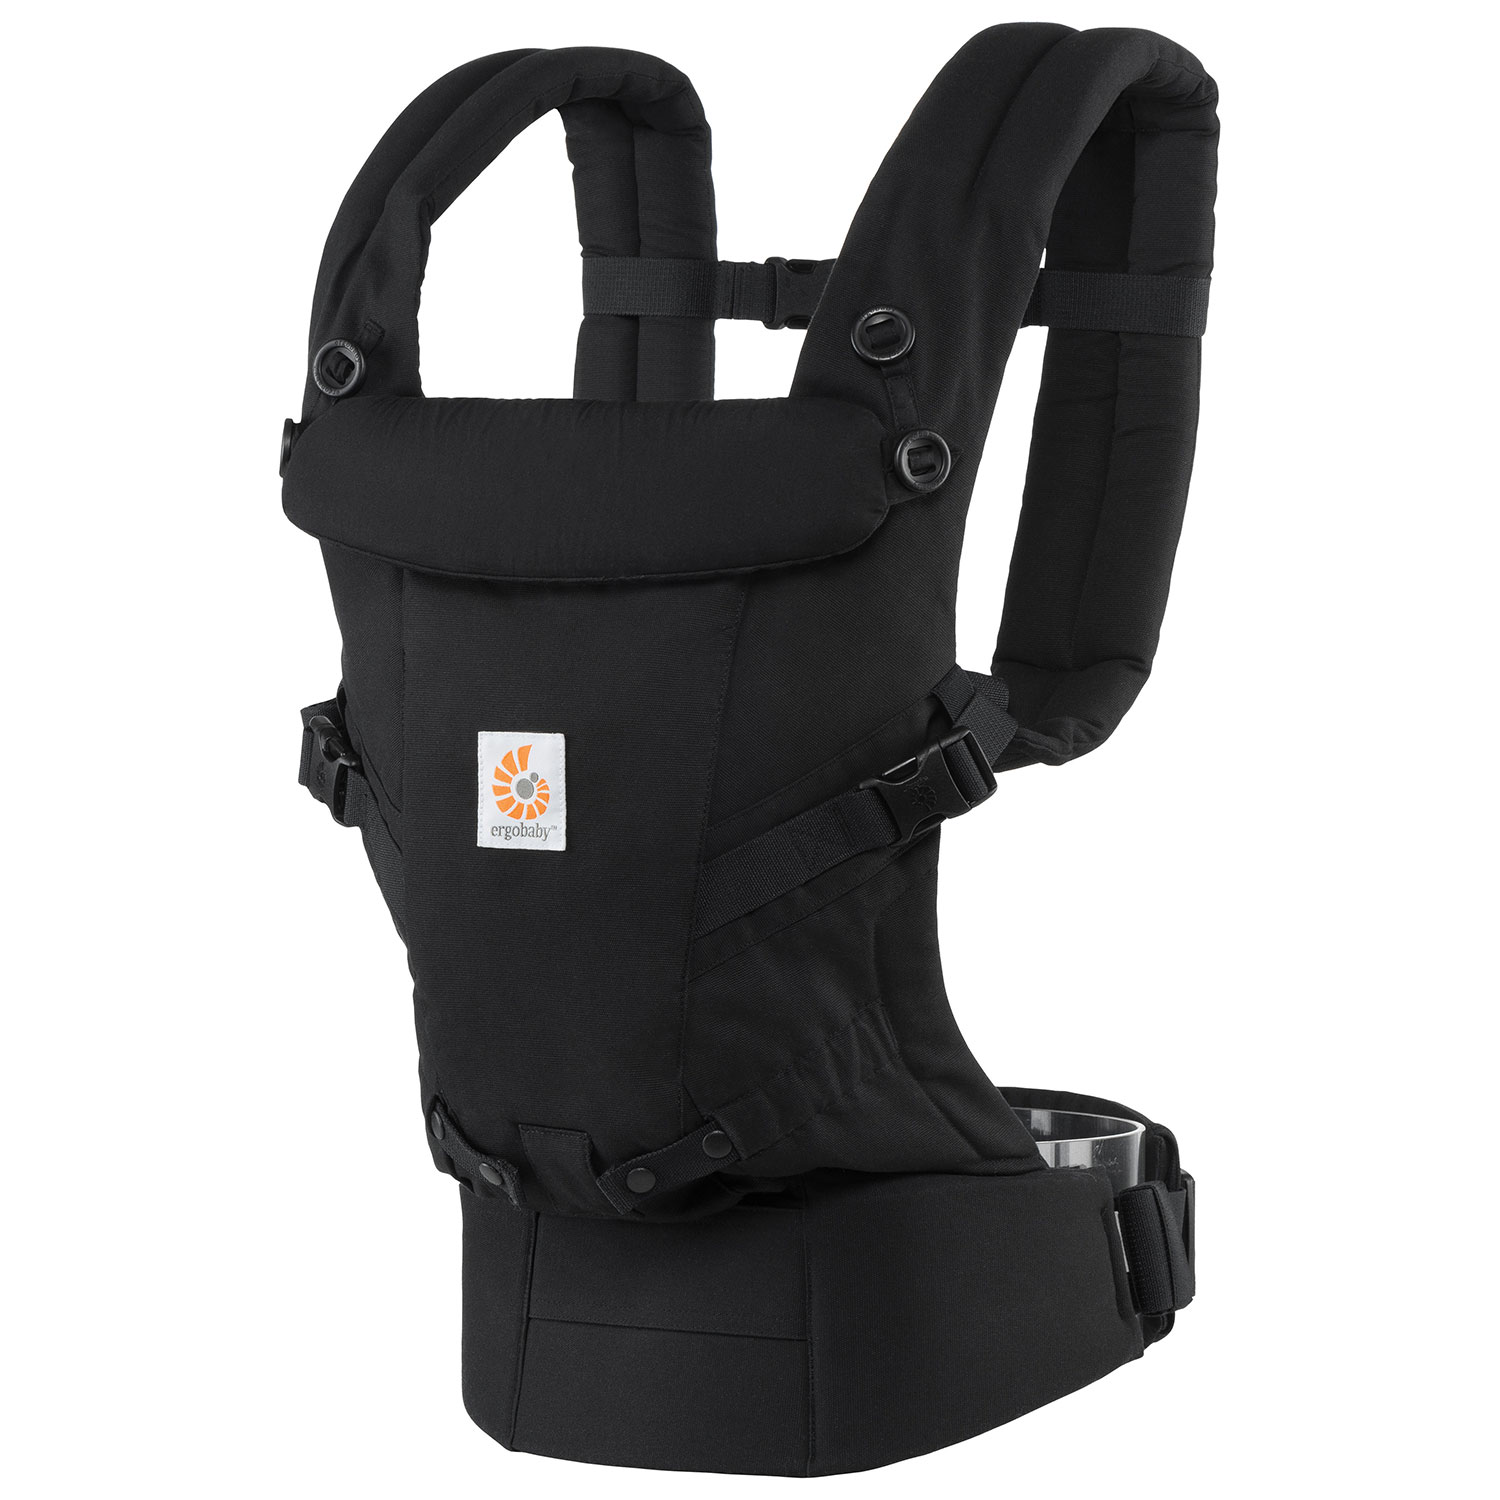 Ergobaby ADAPT Three Position Baby Carrier - Black   Baby Carriers ...